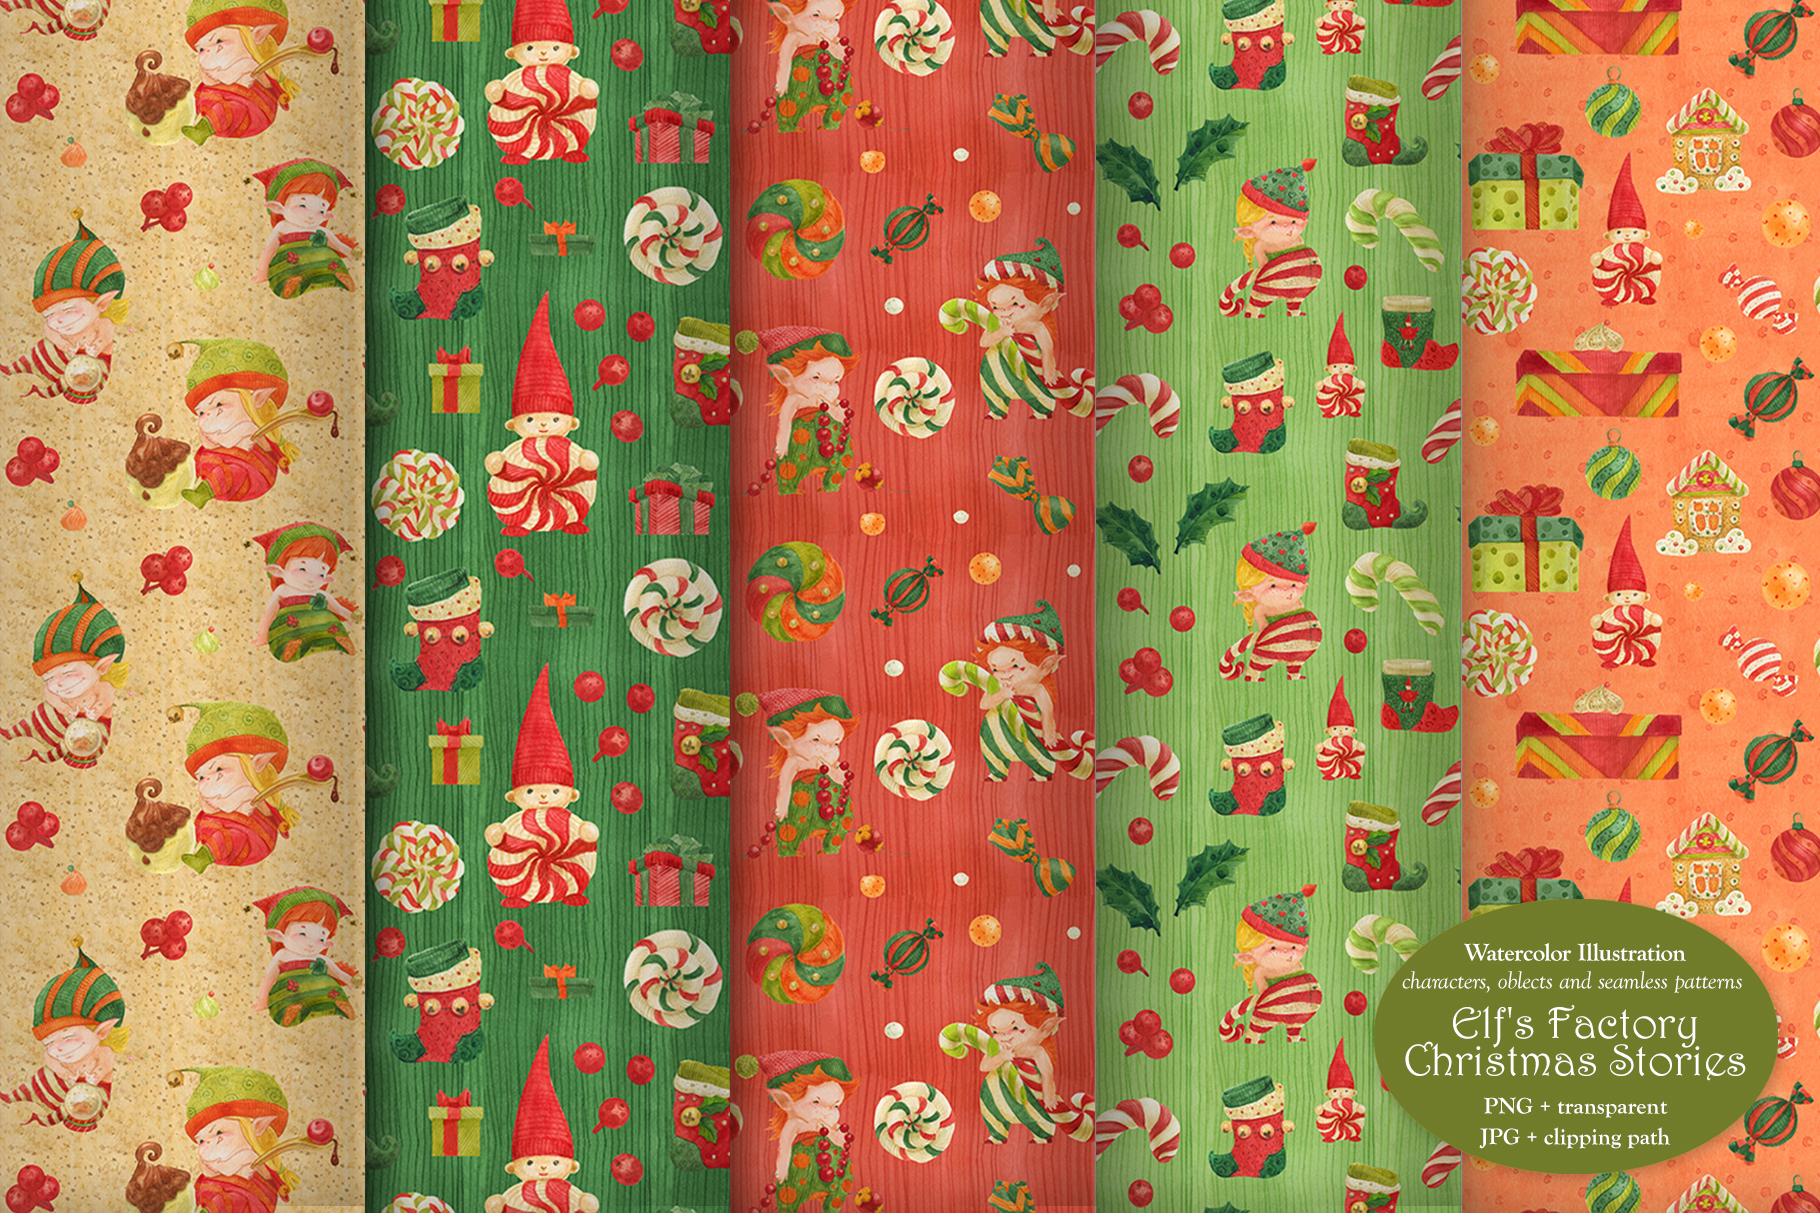 Elf's Factory Christmas Stories example image 6